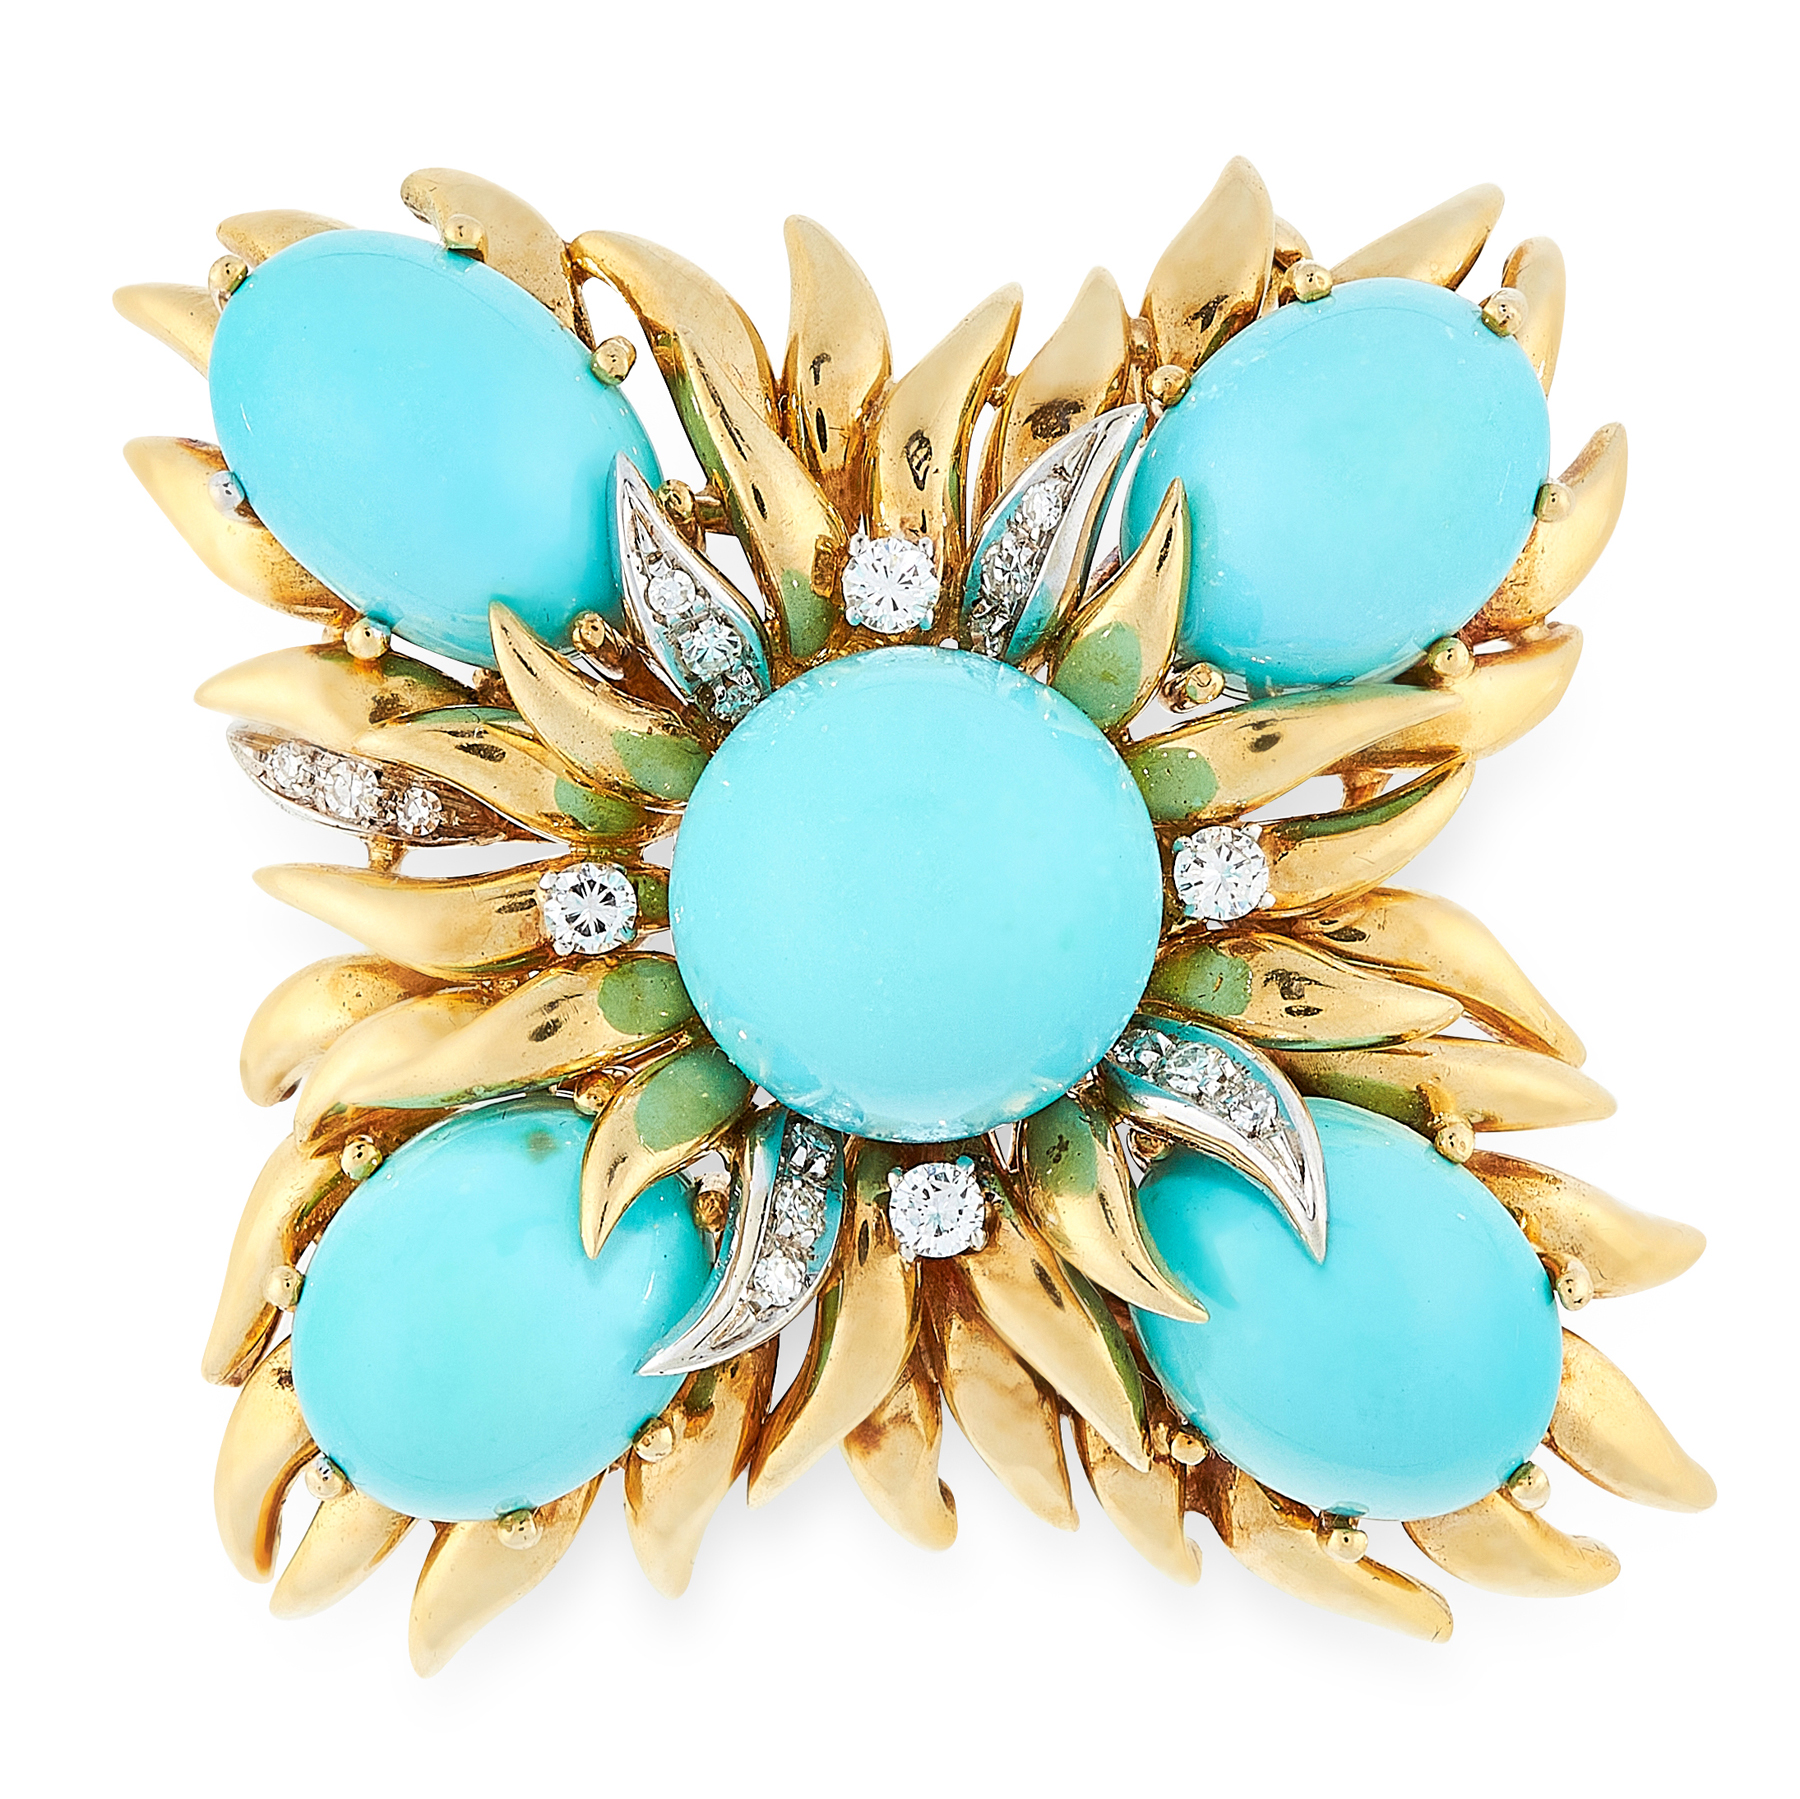 A VINTAGE TURQUOISE AND DIAMOND BROOCH / PENDANT in 18ct yellow gold, set with five circular and